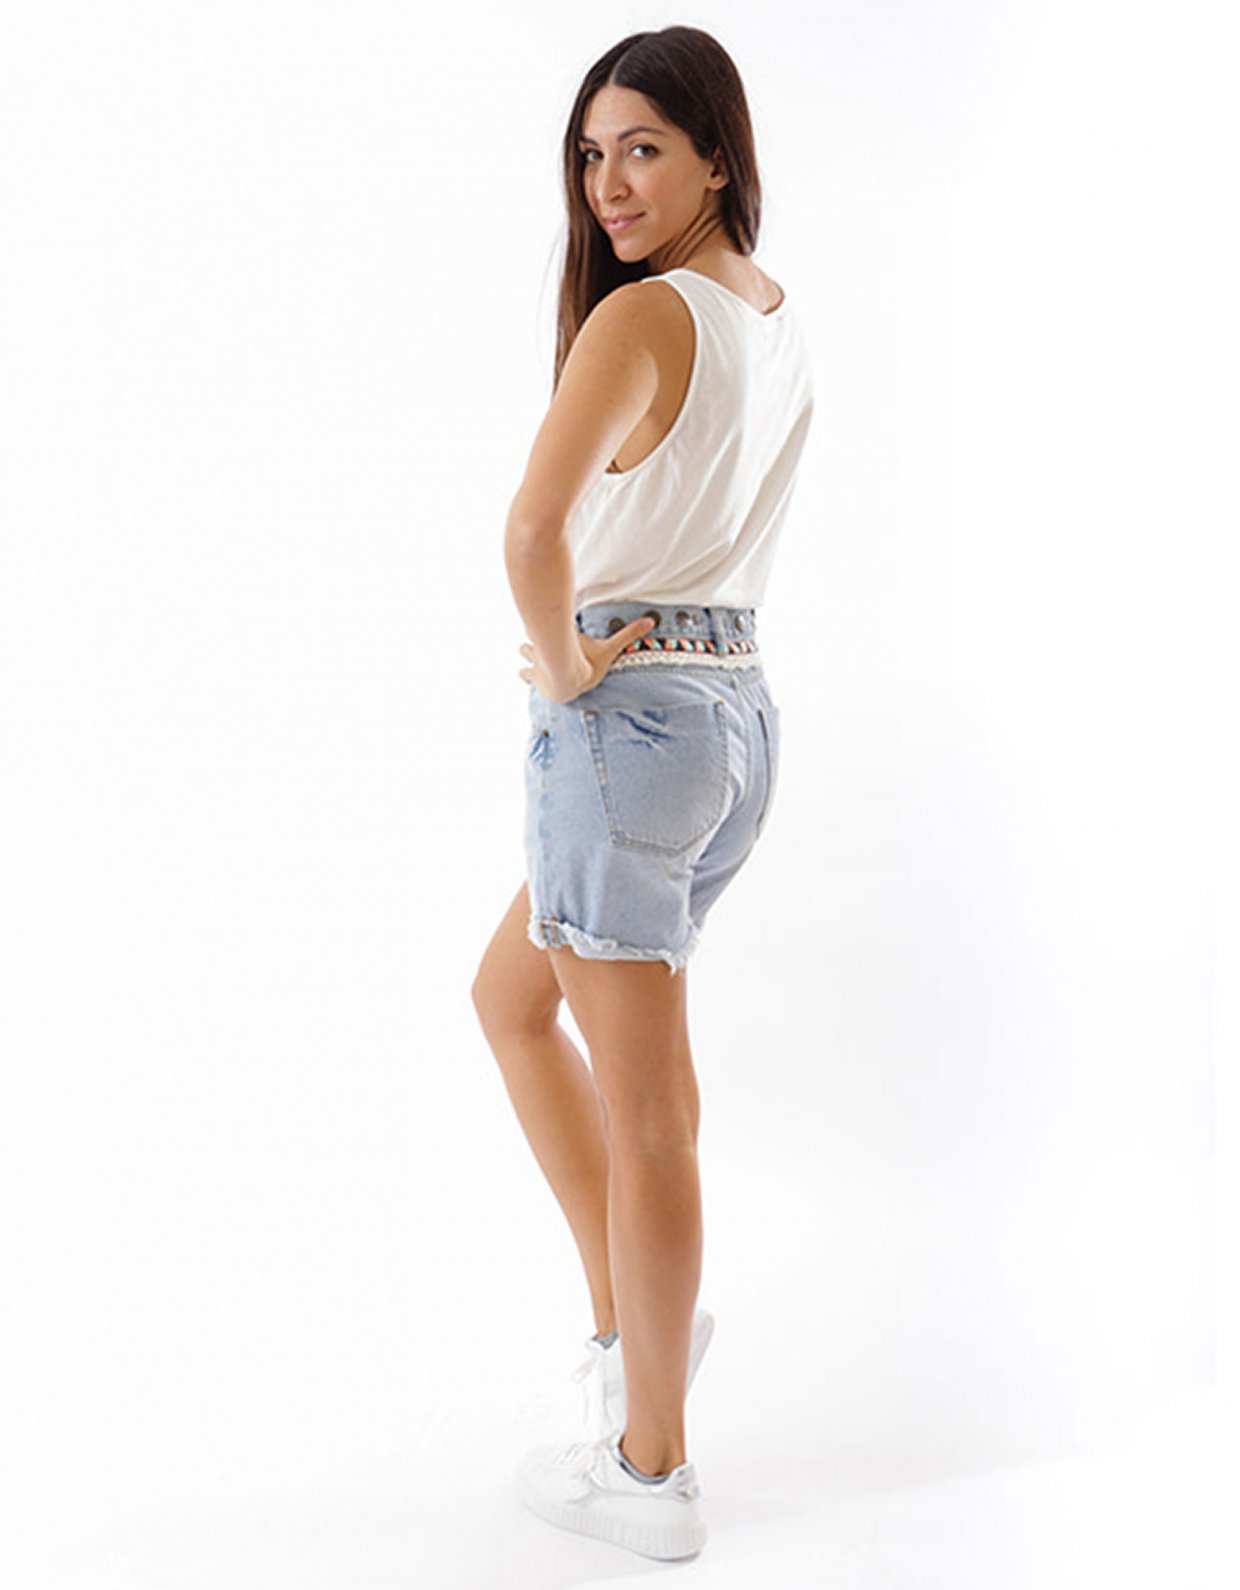 Salt & Pepper Marilena Aztec shorts